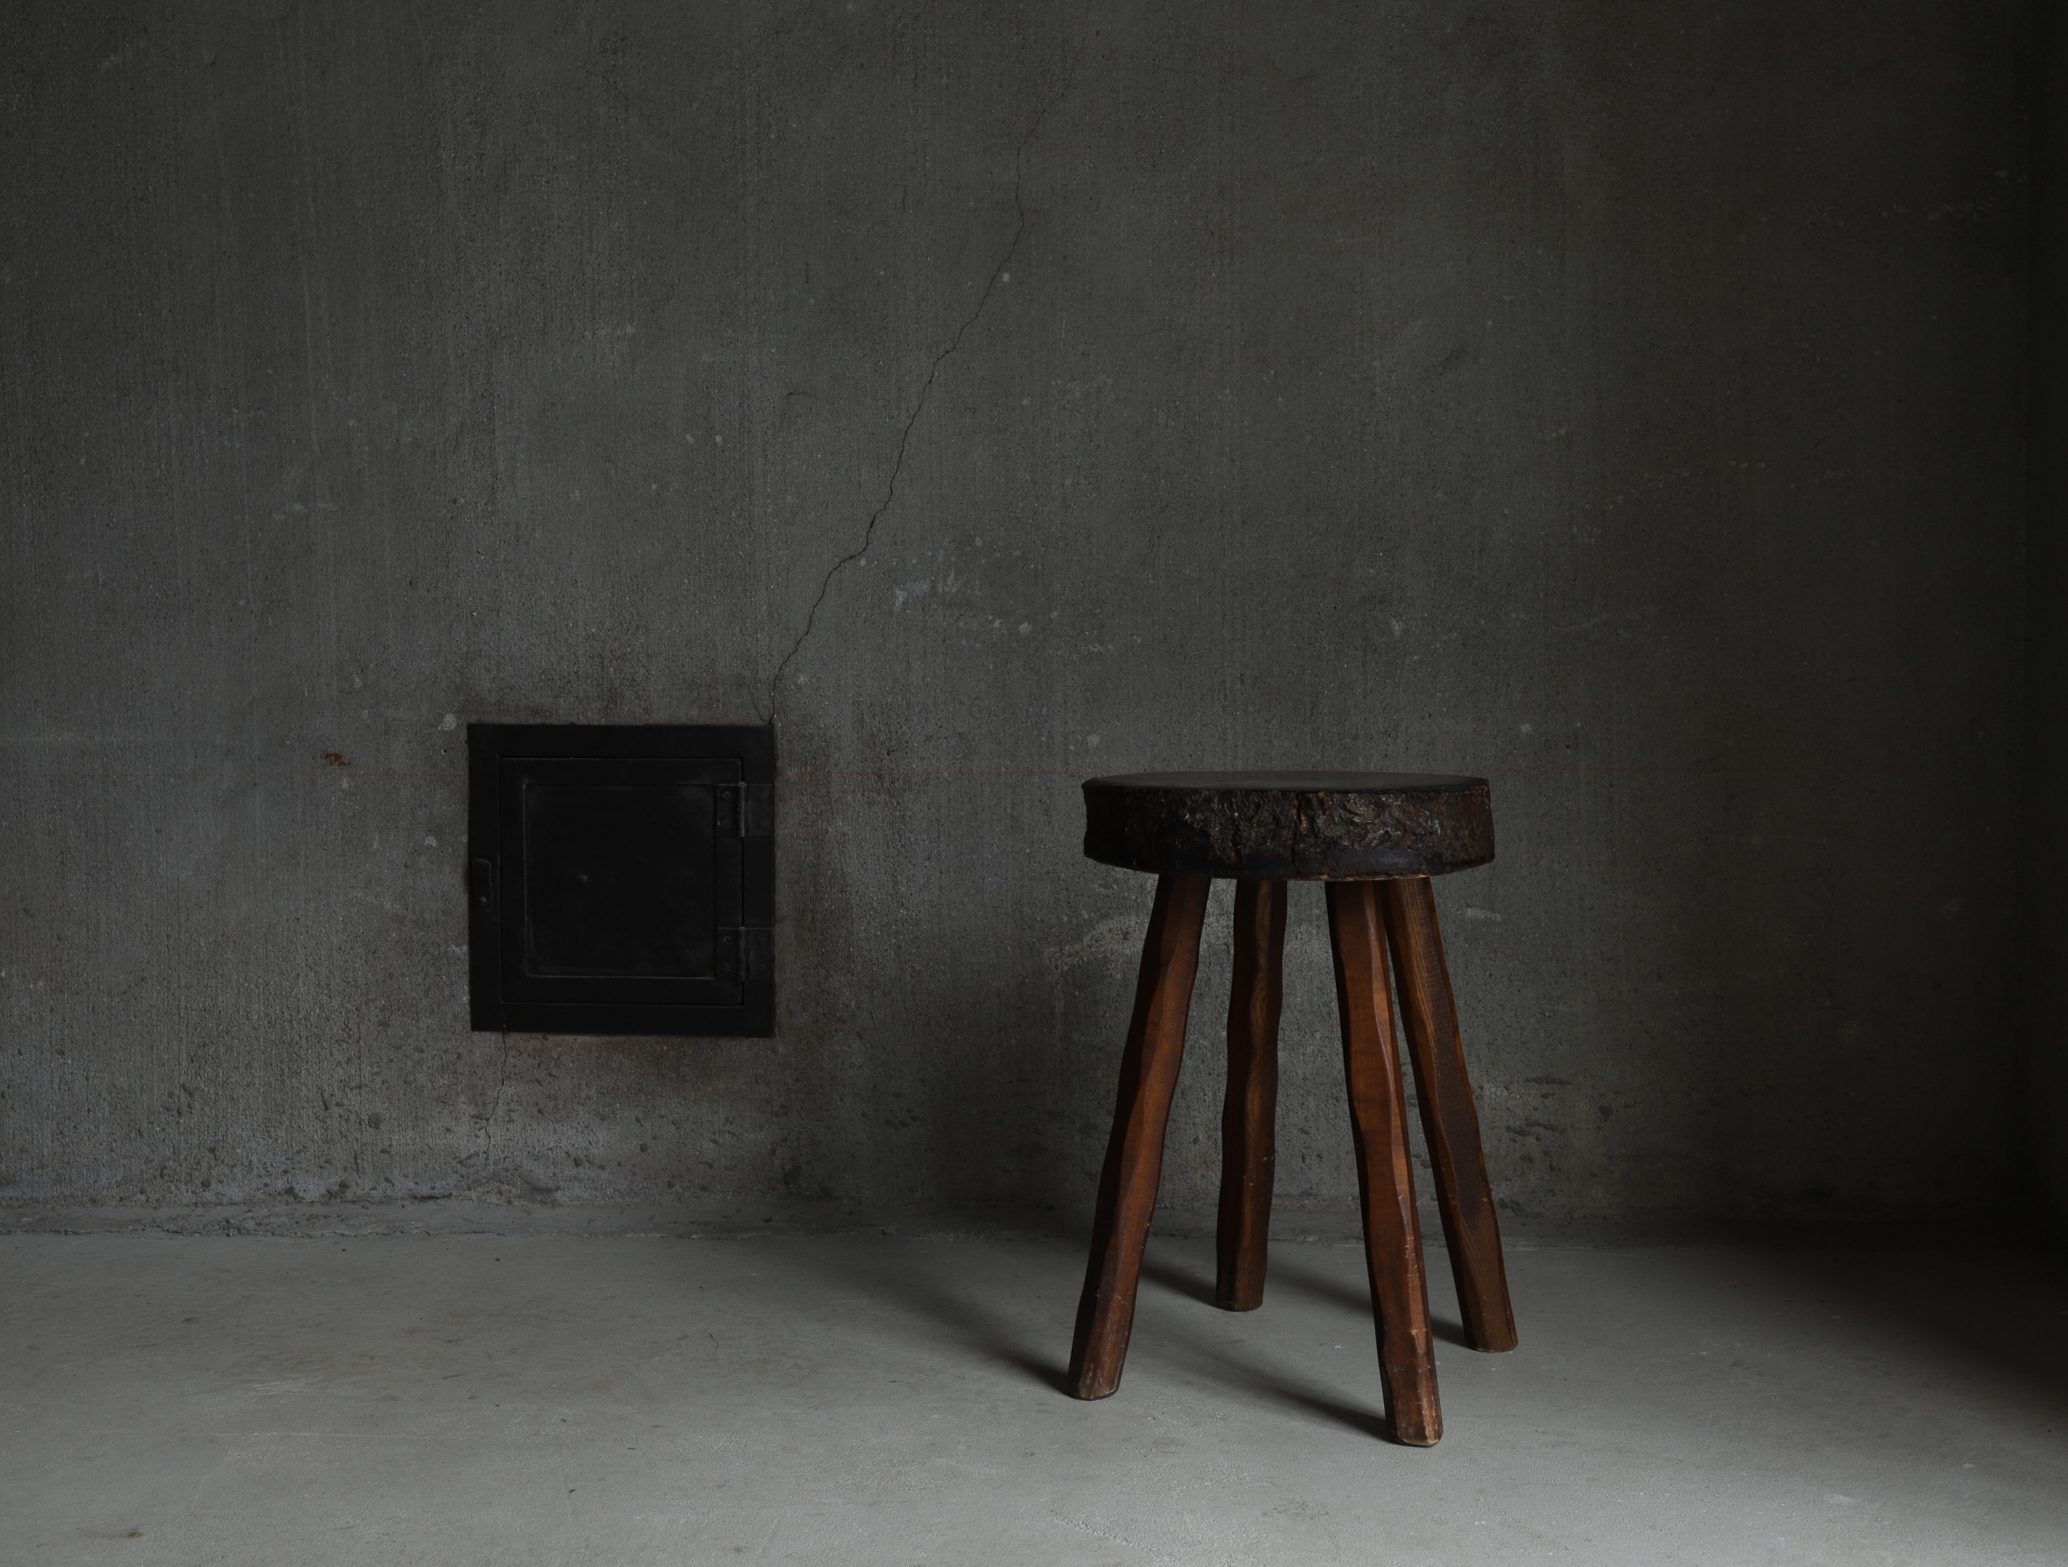 Primitive Wood Stool I スツール